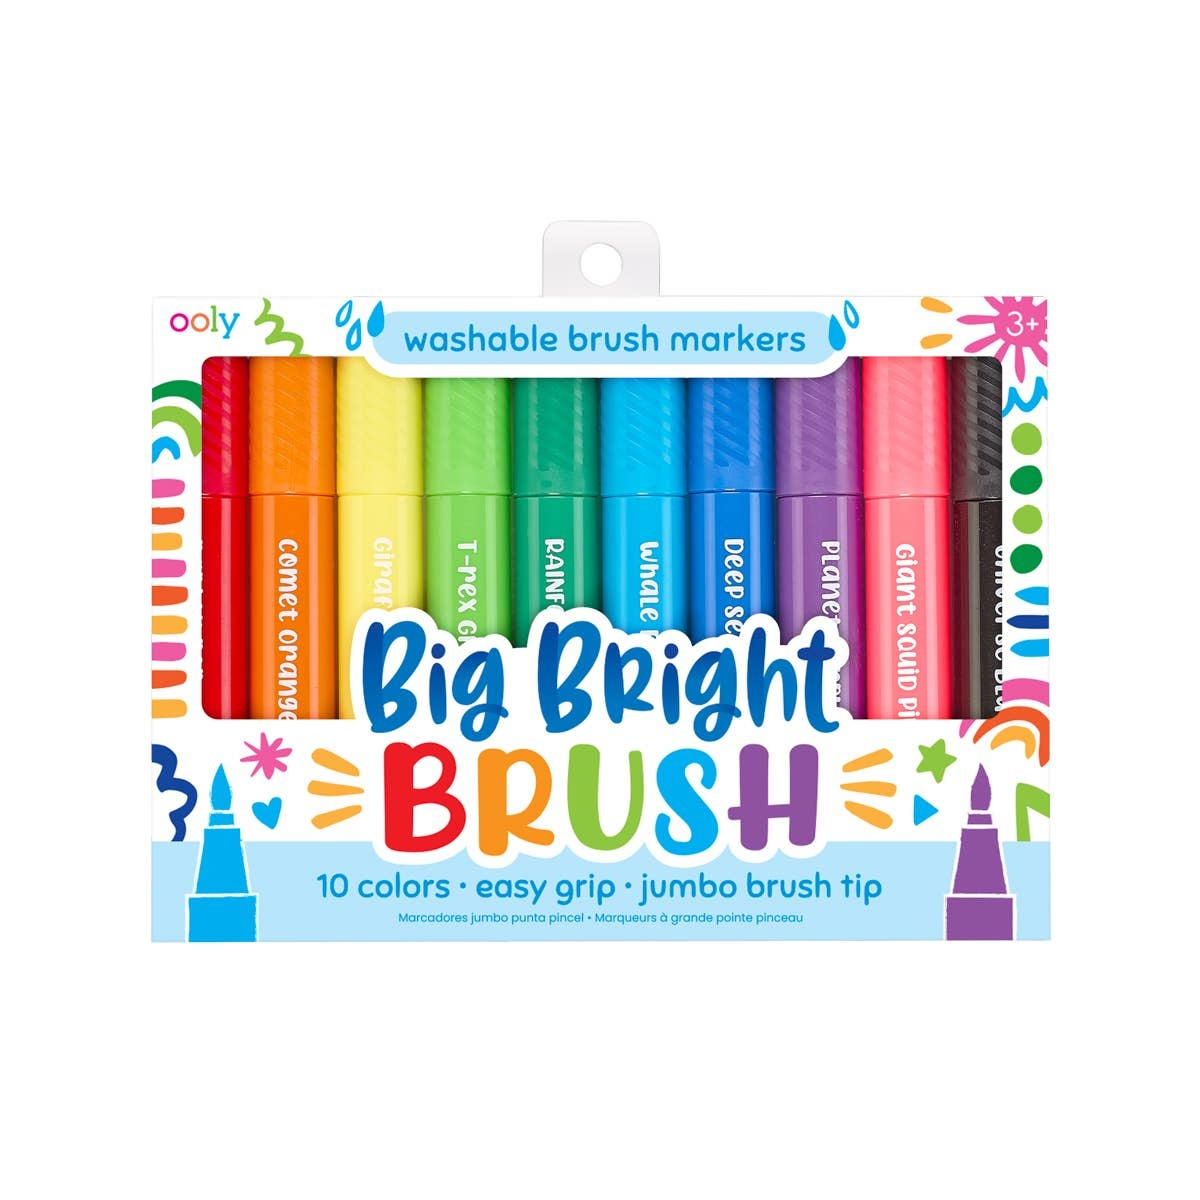 ooly Ooly Big Bright Brush Markers - set of 10